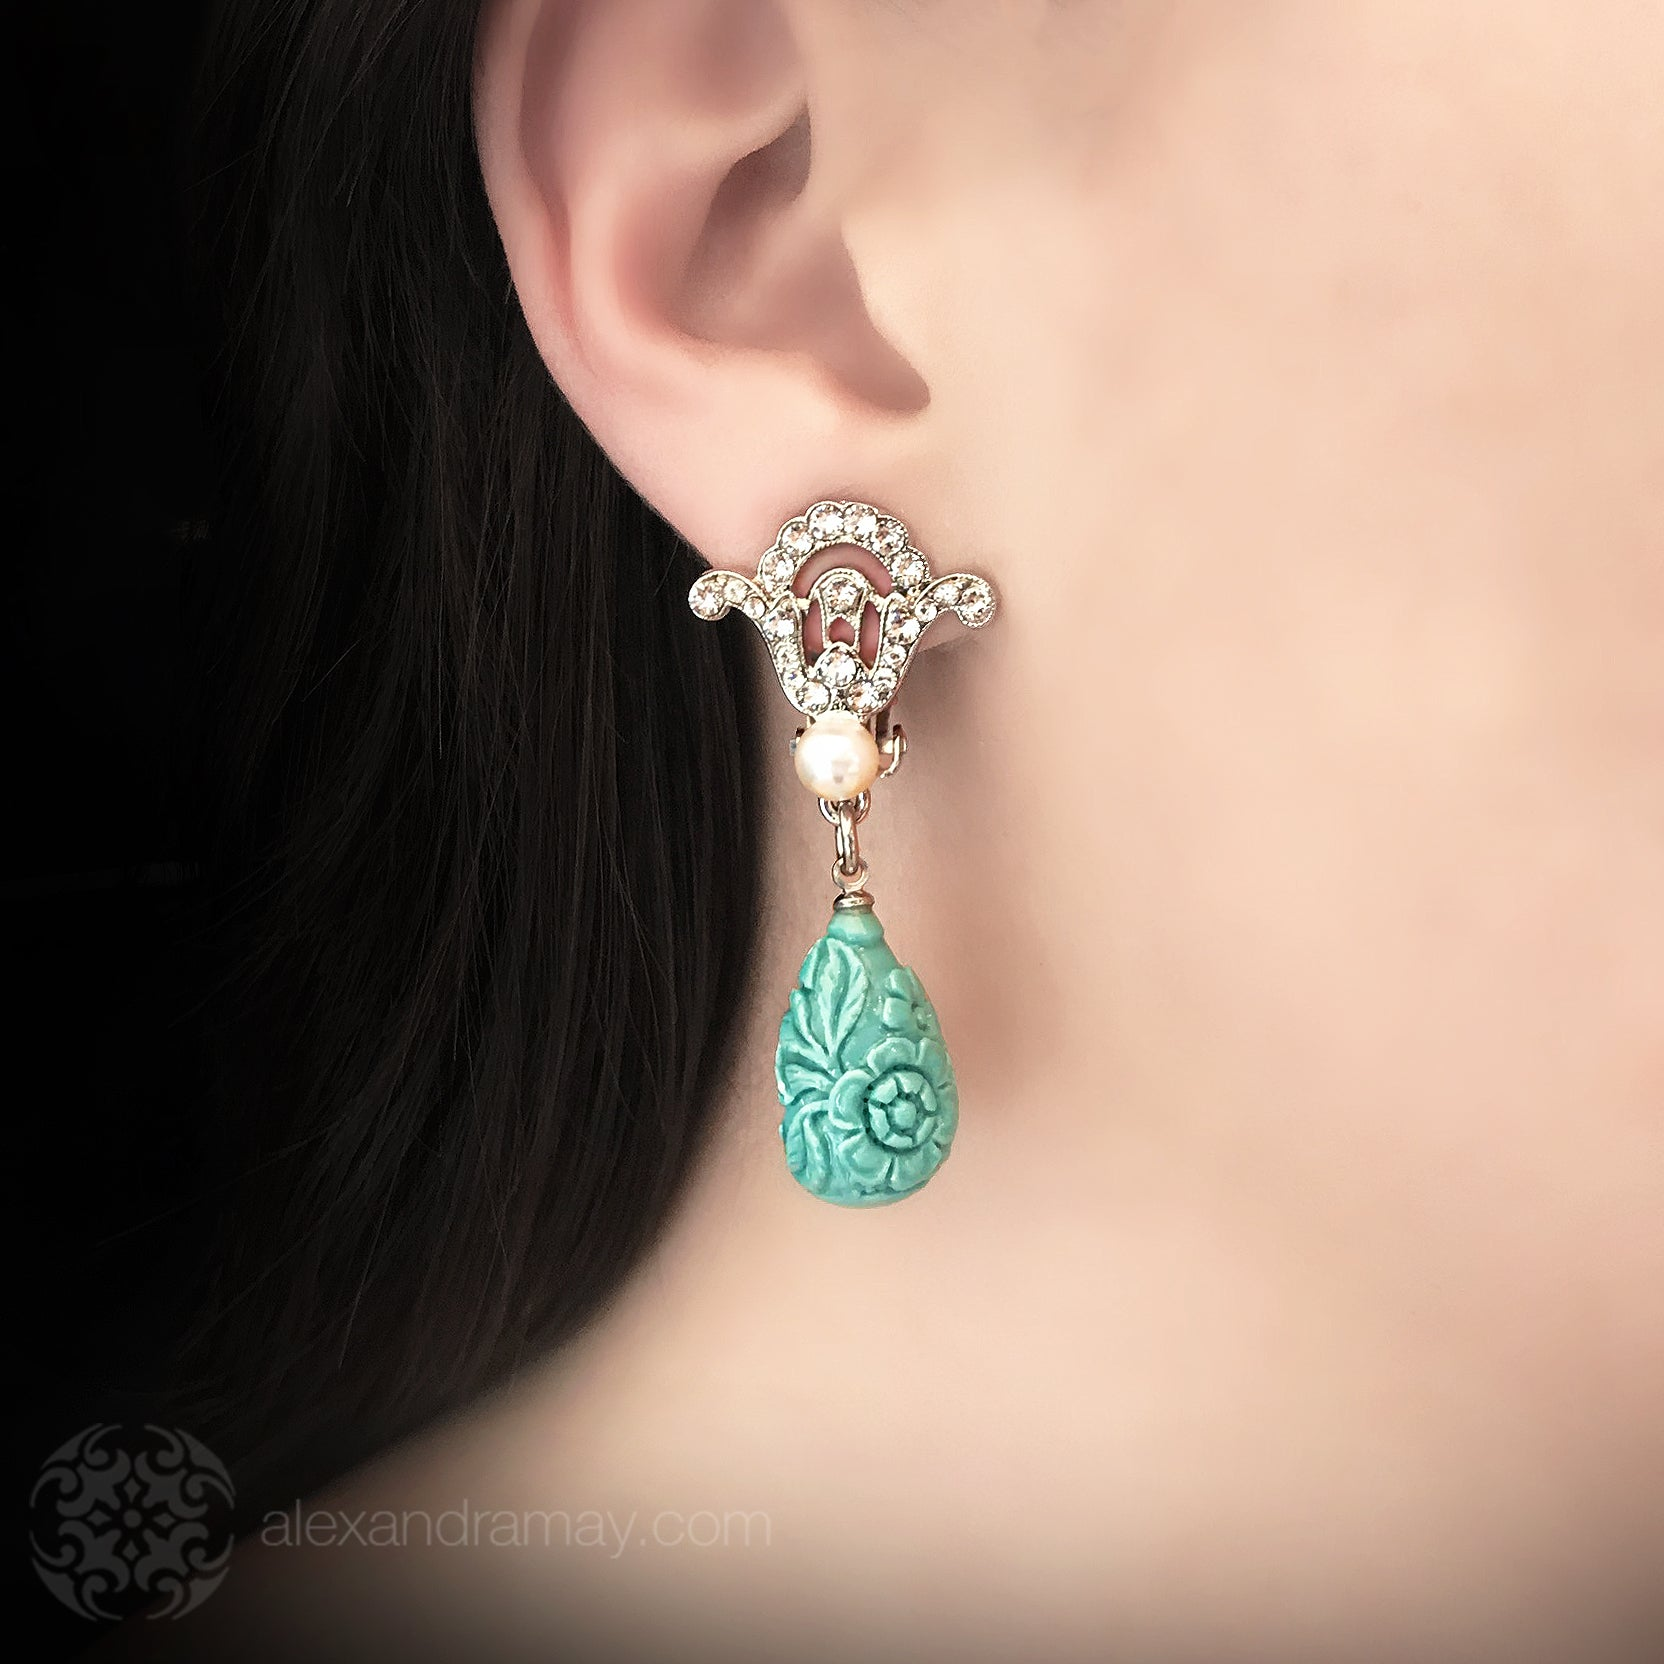 Philippe Ferrandis 'Orient Express' Crystal, Pearl and Turquoise Teardrop Clip-on Earrings (ORE 106/2) Model